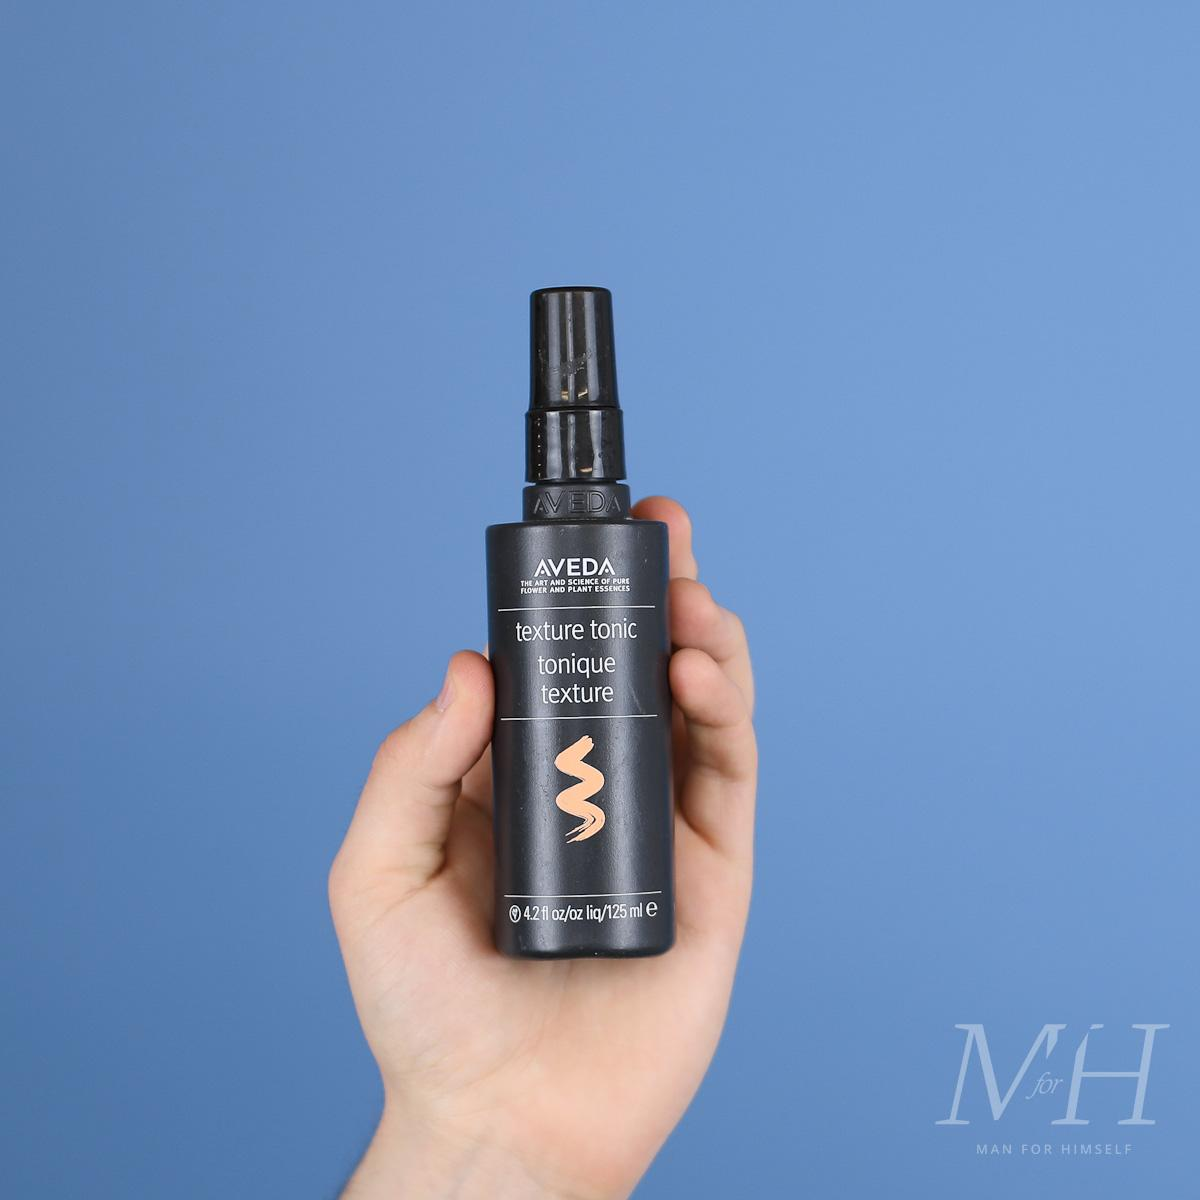 aveda-texture-tonic-product-review-man-for-himself